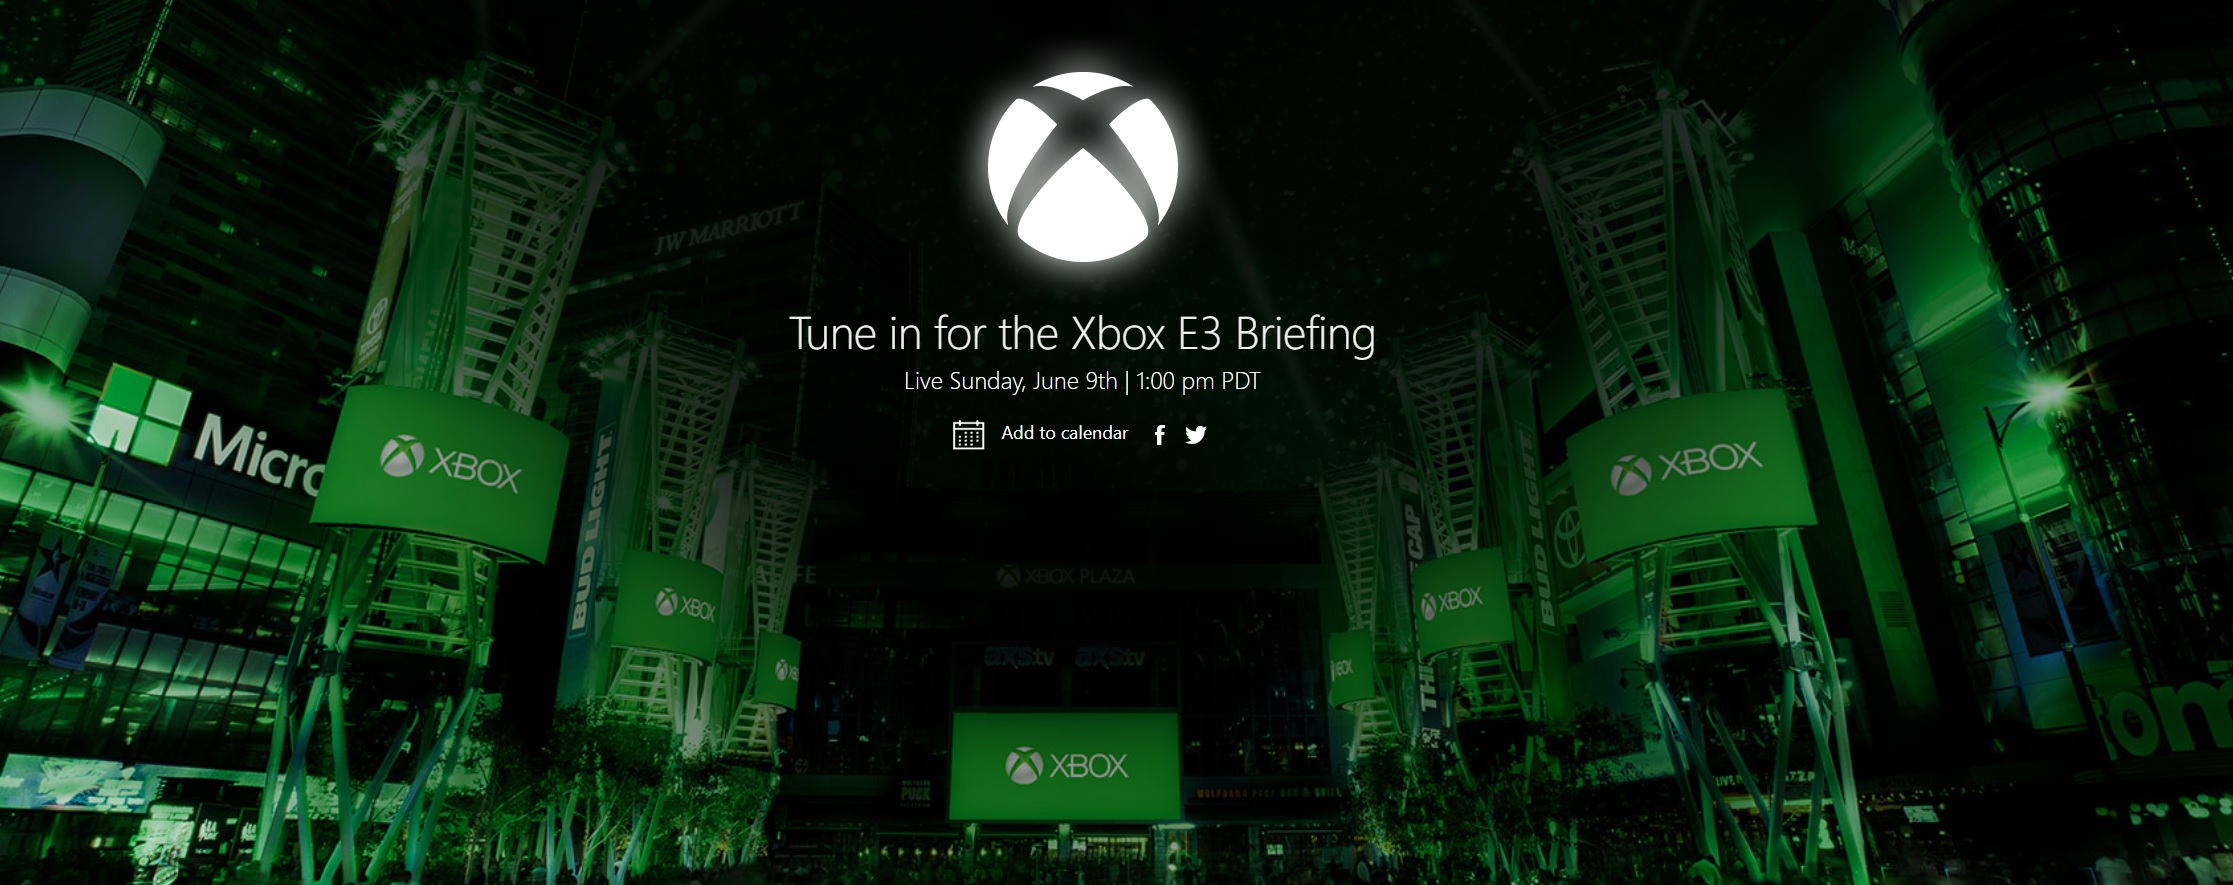 Microsoft's E3 conference will be held on June 9 screenshot